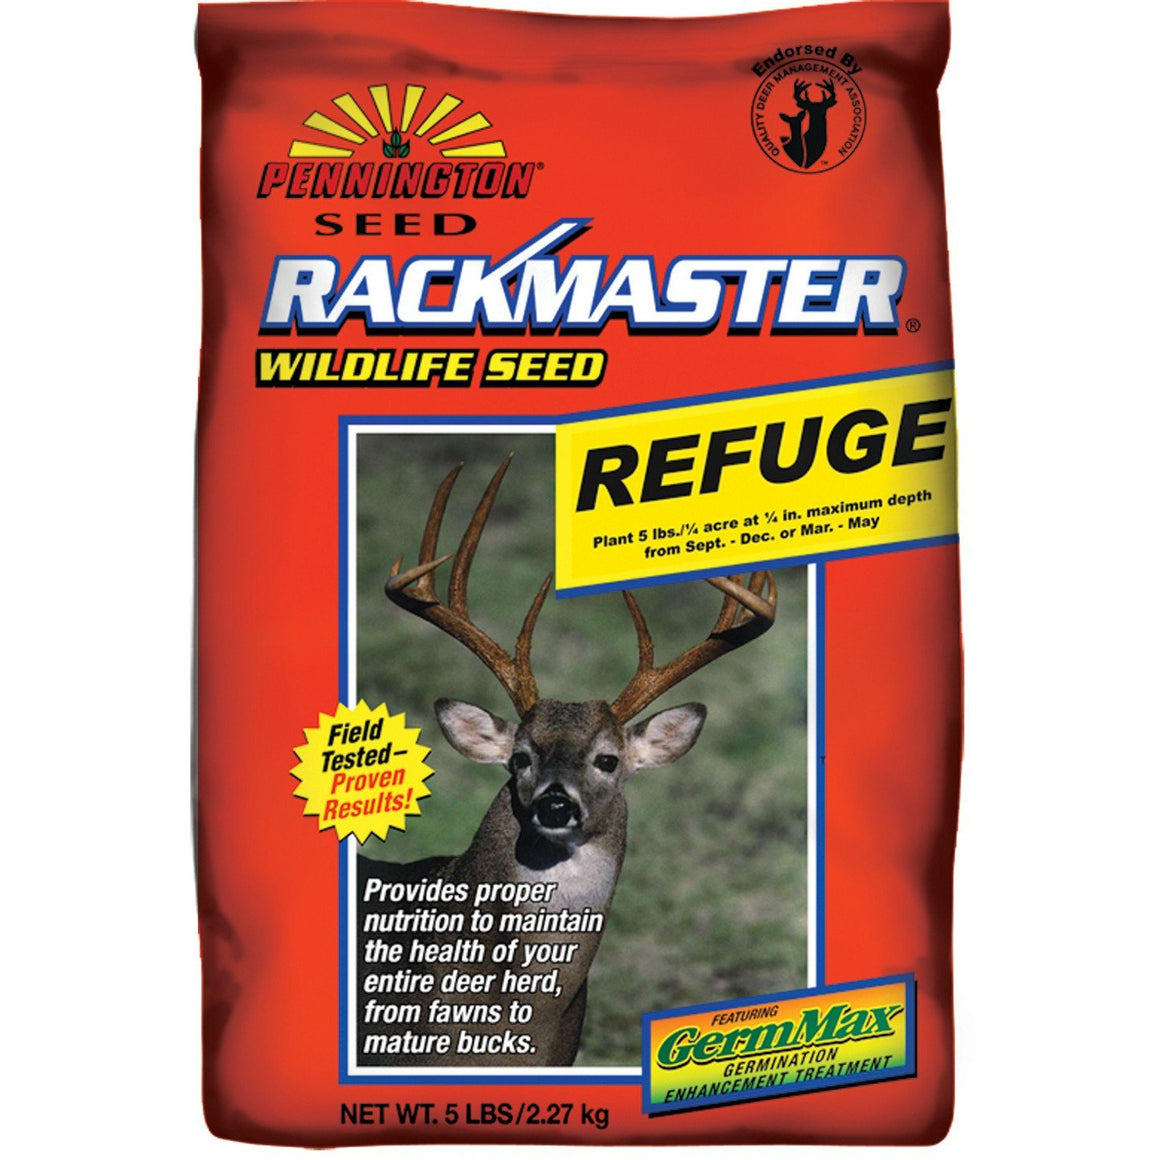 Rackmaster Refuge Food Plot Seed